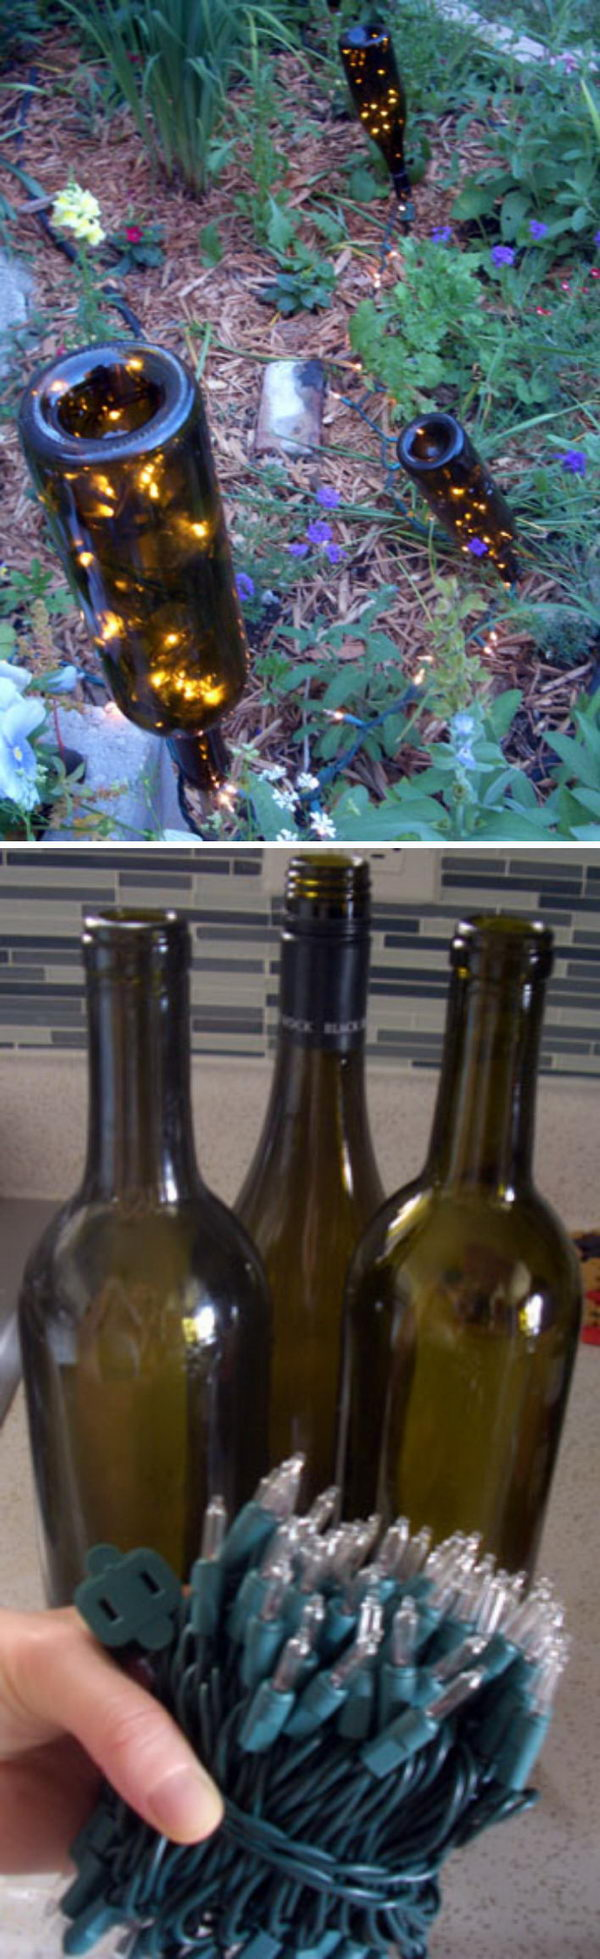 DIY Garden Lights Using Wine Bottles With String Lights.